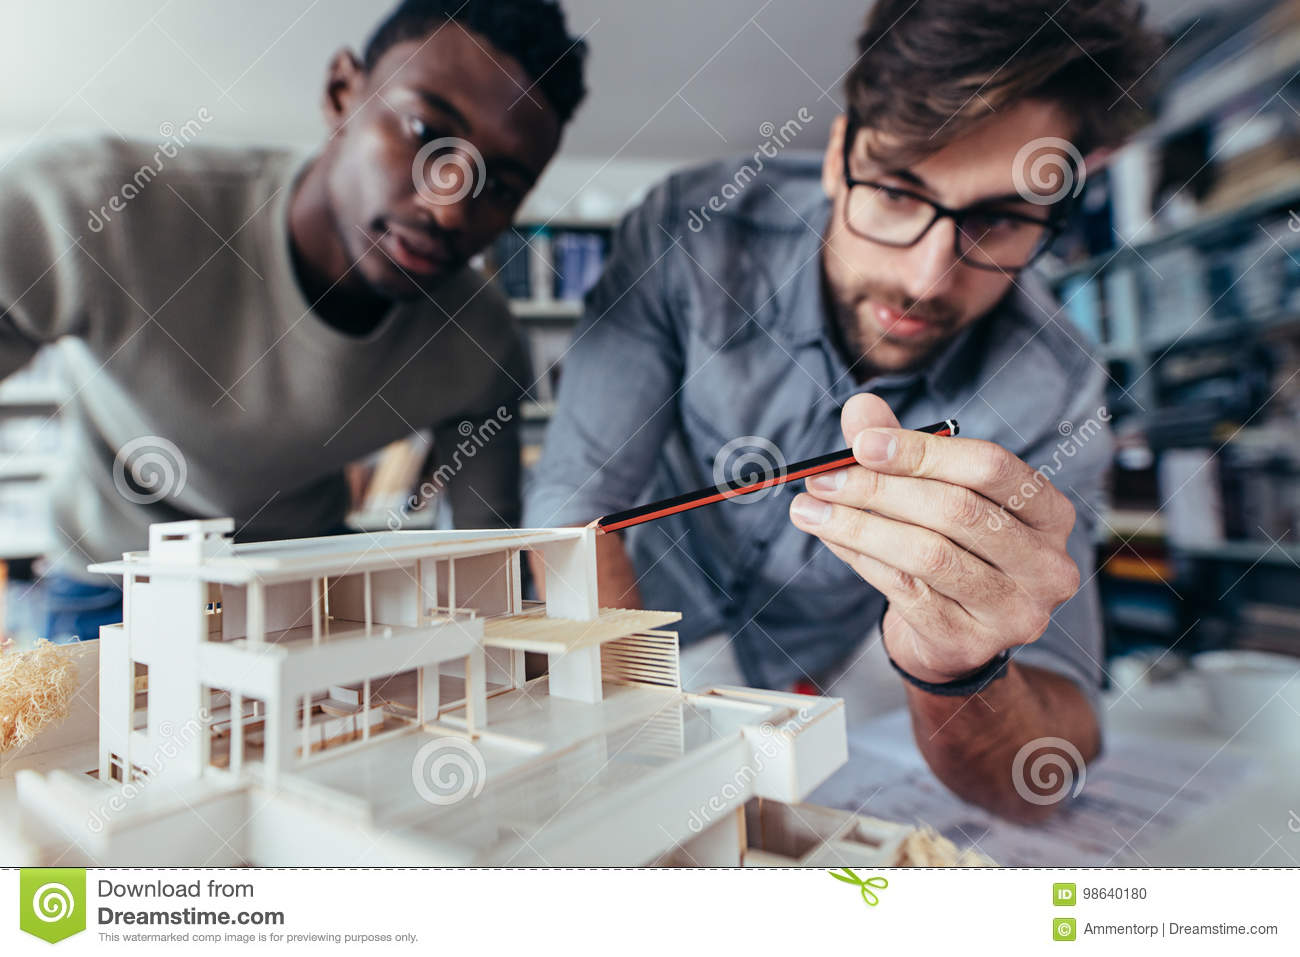 Architects working on new architectural house model